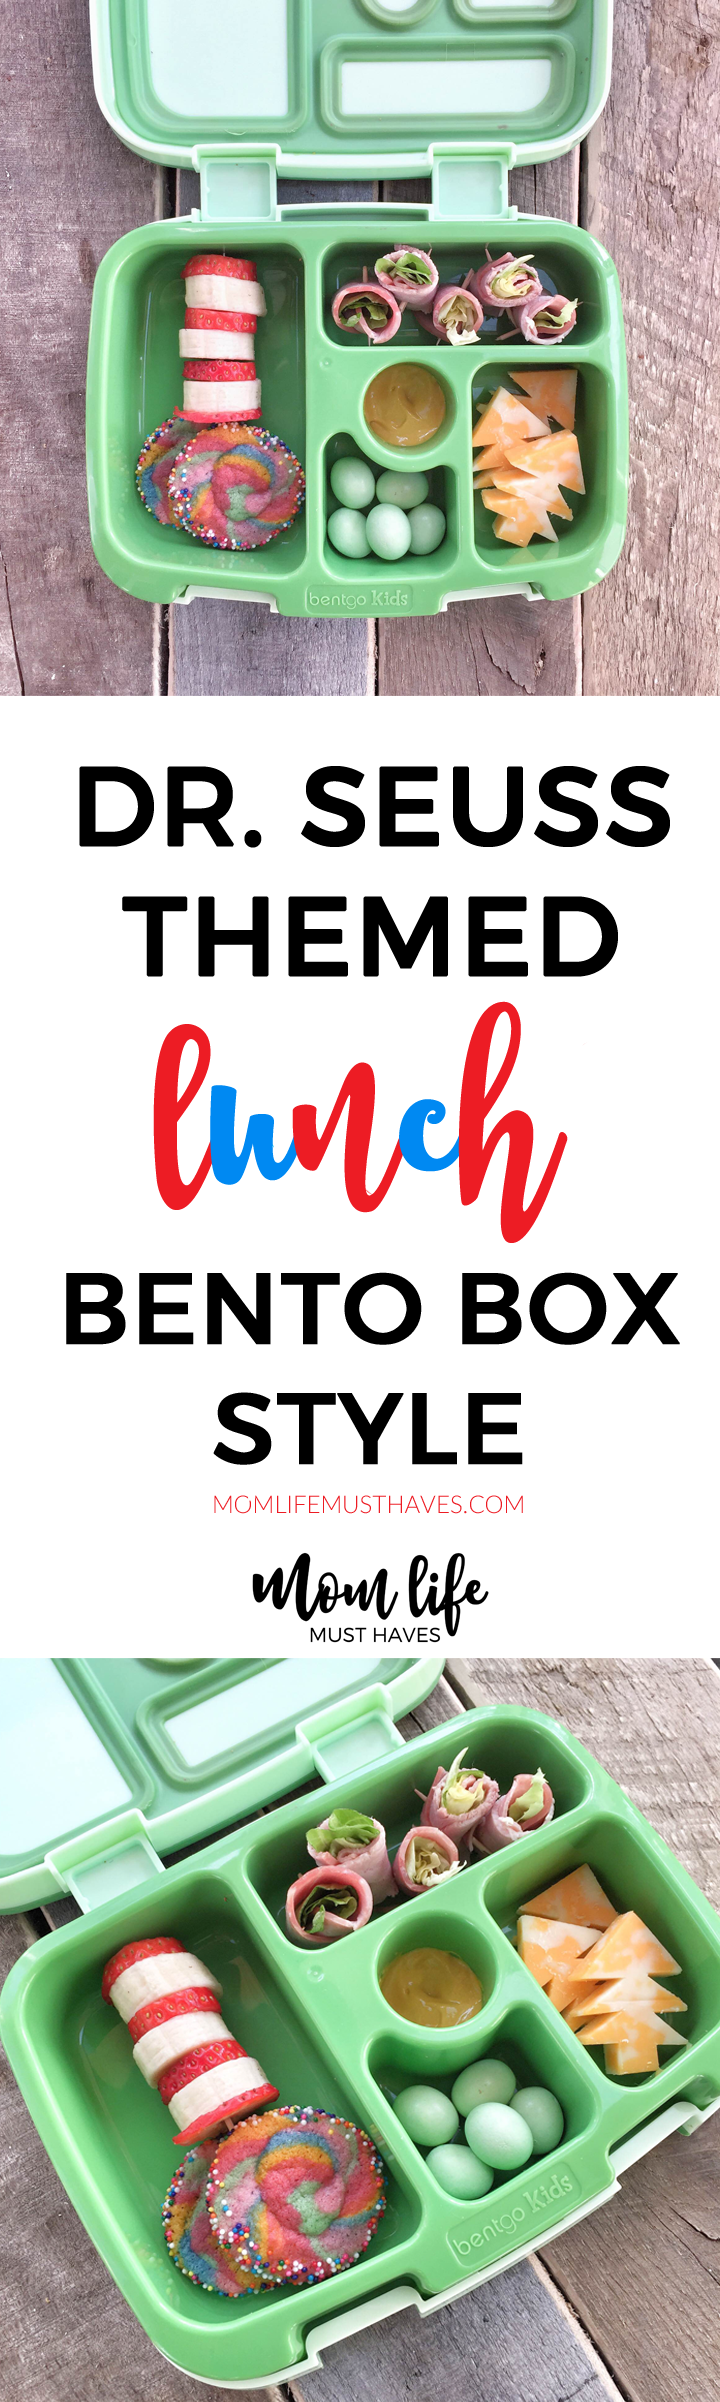 Dr. Seuss bento box lunch for kids! momlifemusthaves.com